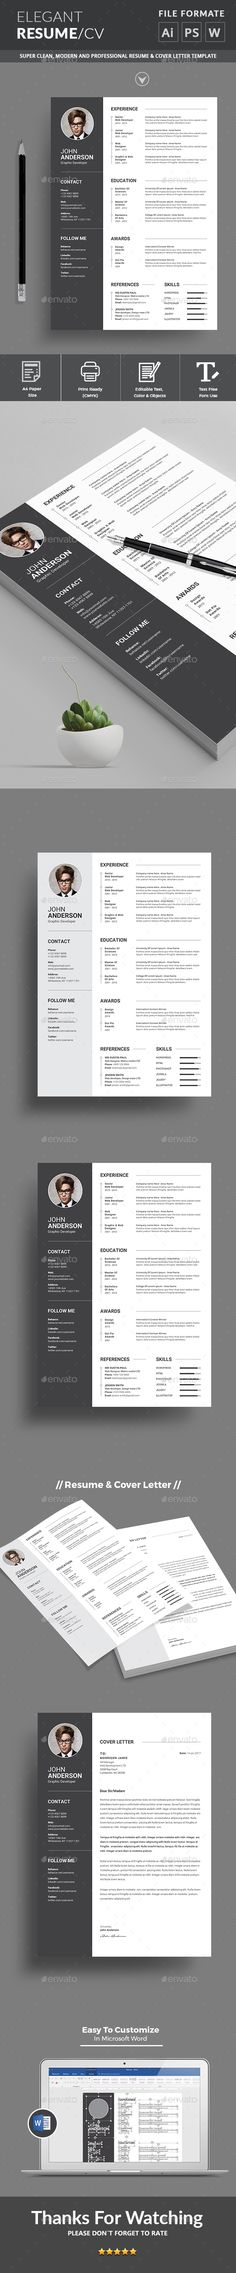 Job Seekeru0027s Dream Bundle Template